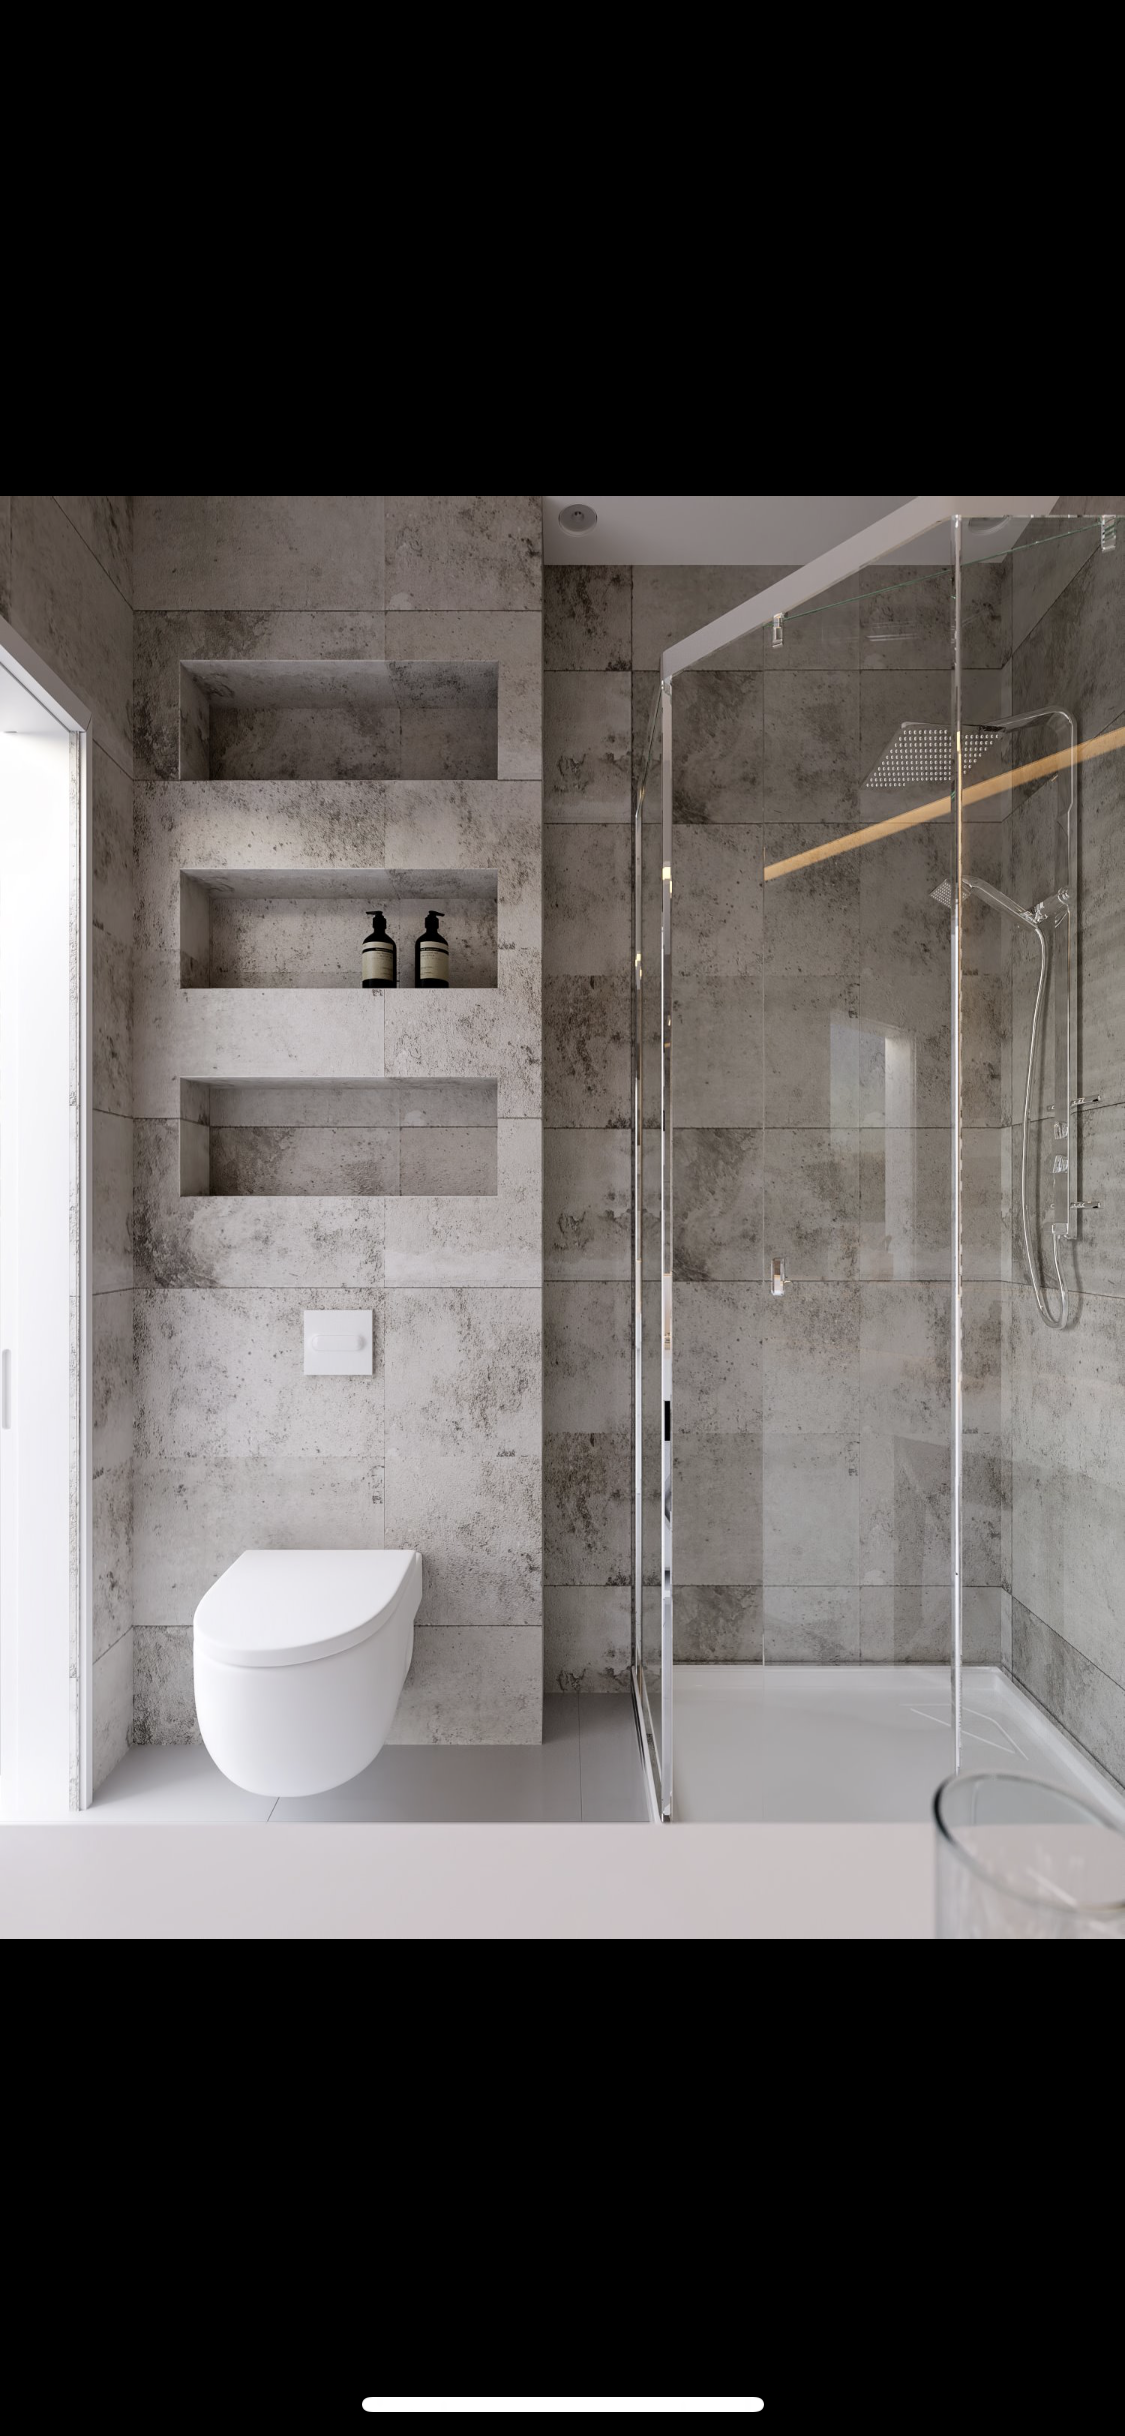 Pin by Niva on bath plans | Pinterest | Bathroom designs, Toilet and ...